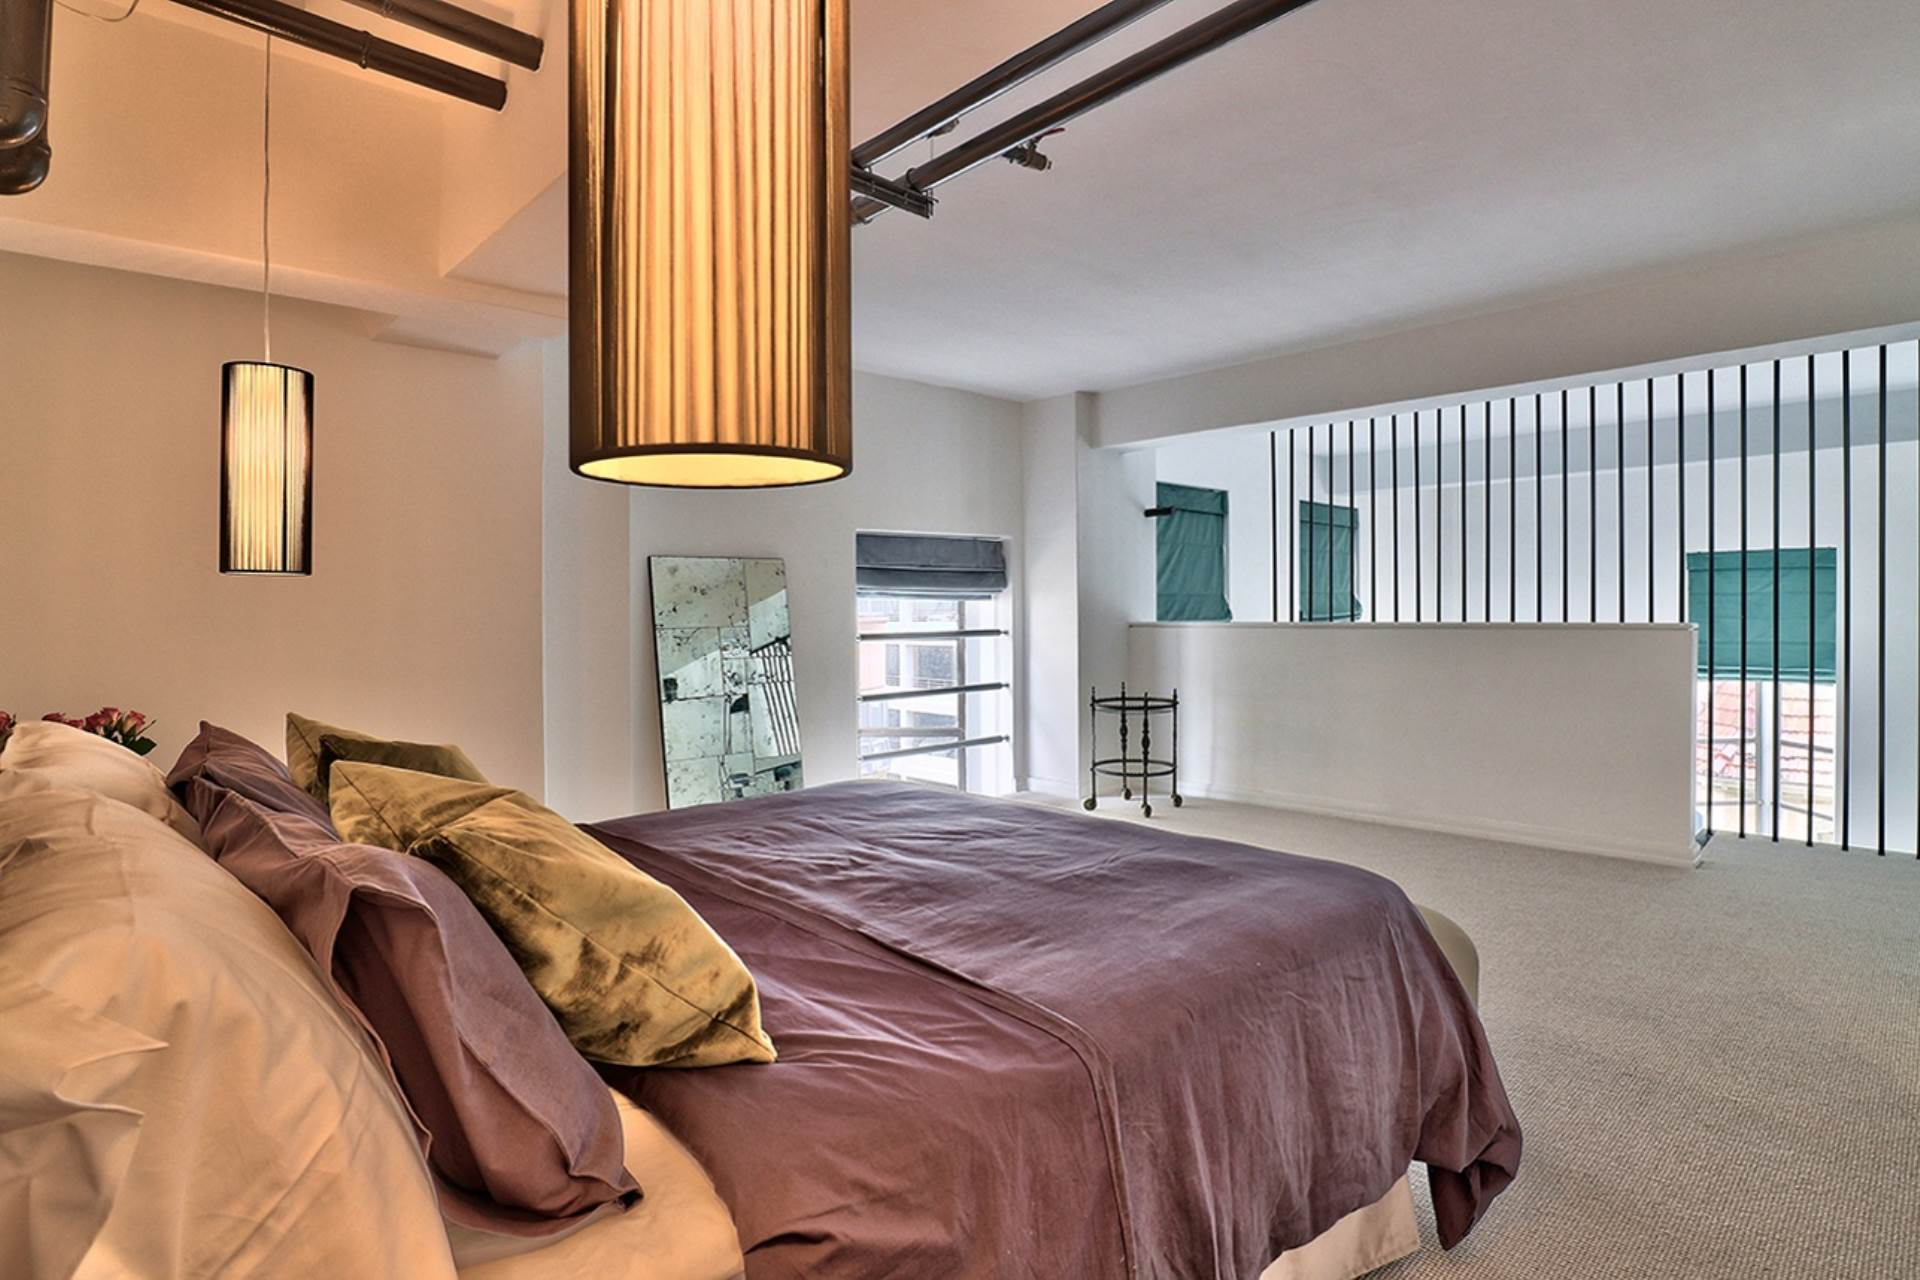 Apartment For Sale In Cape Town 2 Bedroom 13554919 6 3